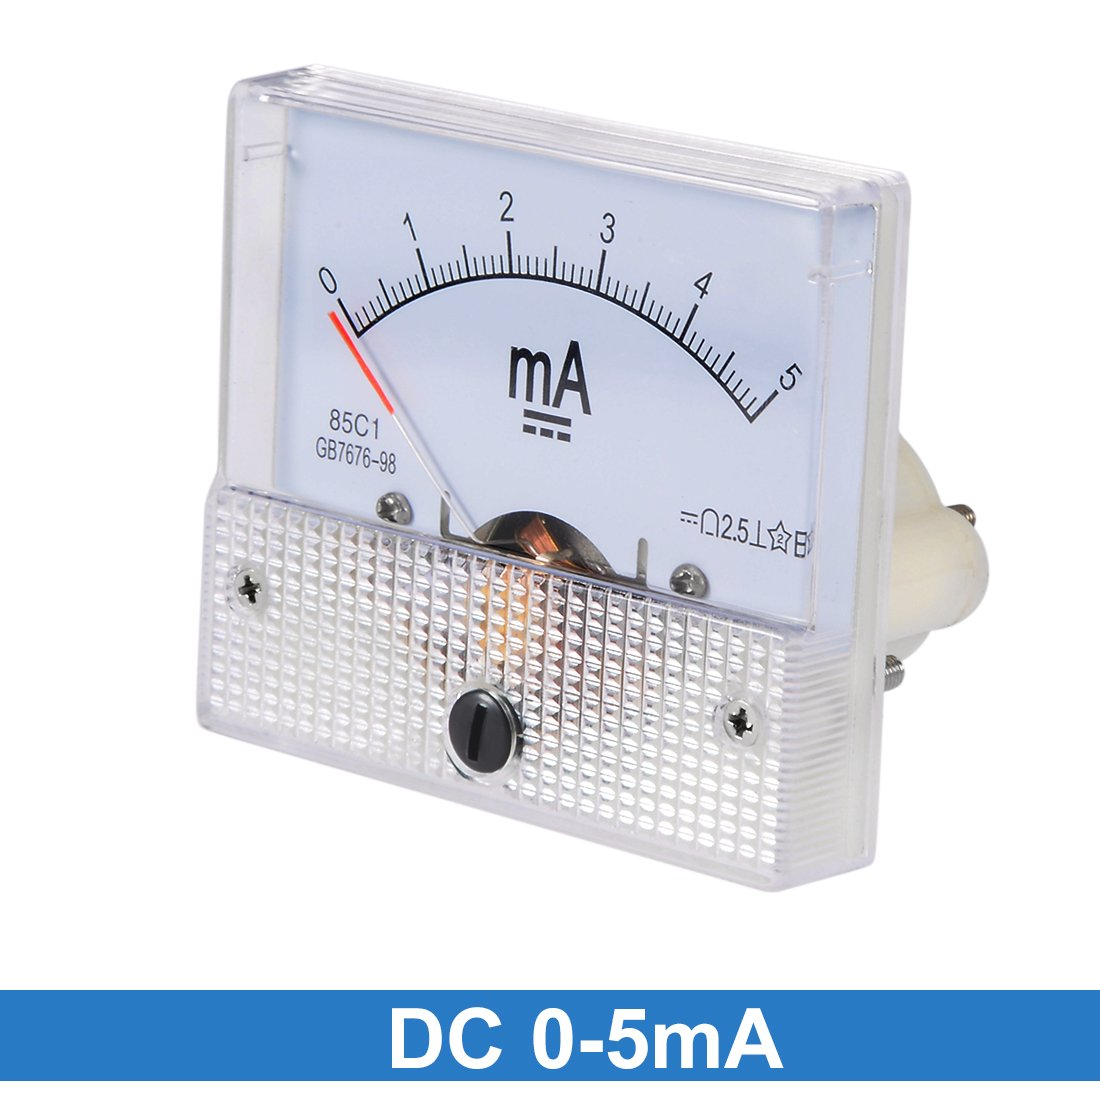 uxcell 85C1 Analog Current Panel Meter DC 200mA Ammeter for Circuit Testing Ampere Tester Gauge 1 PCS a18031200ux0172